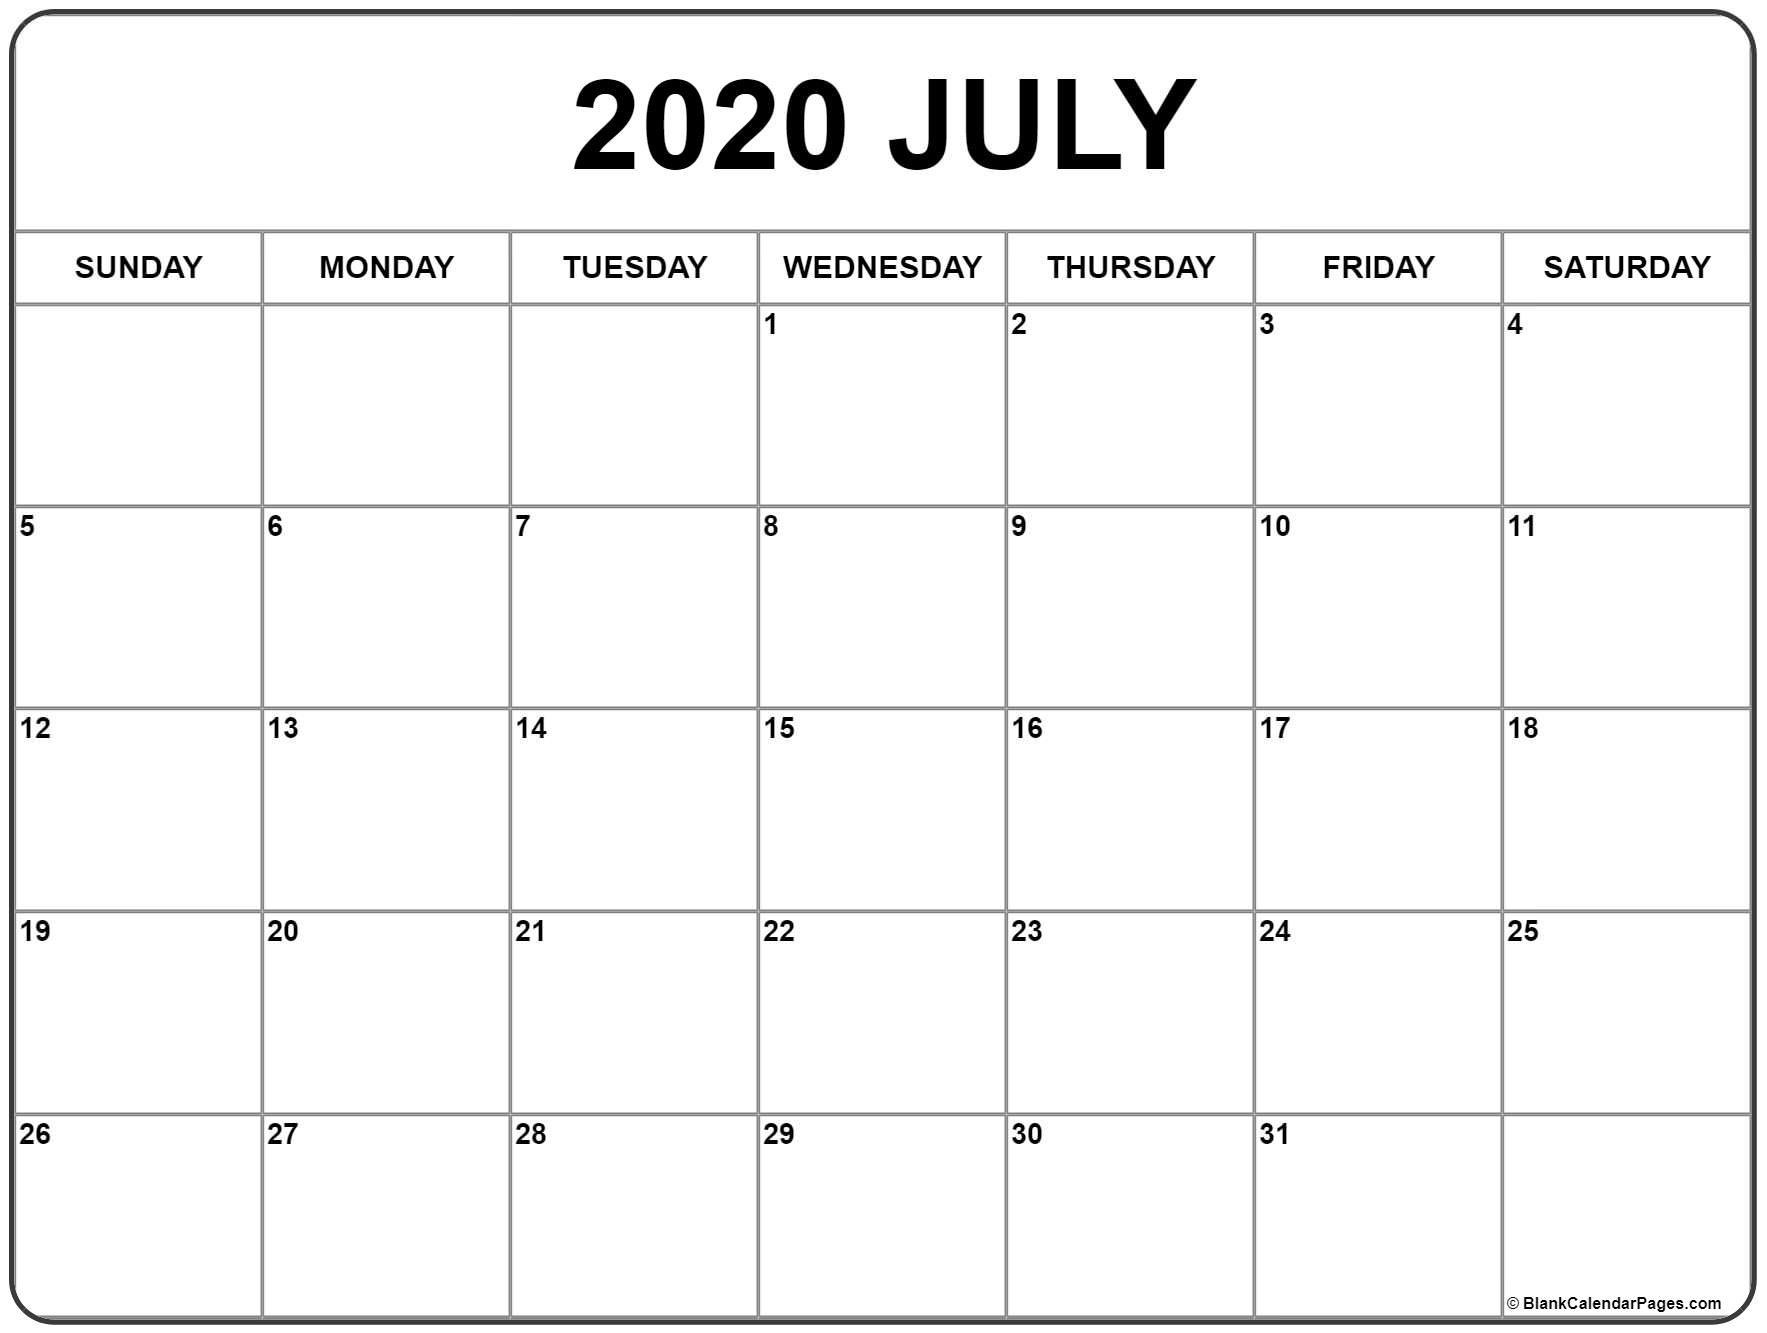 2020 And 2015 Blank Calendar Printable - Wpa.wpart.co